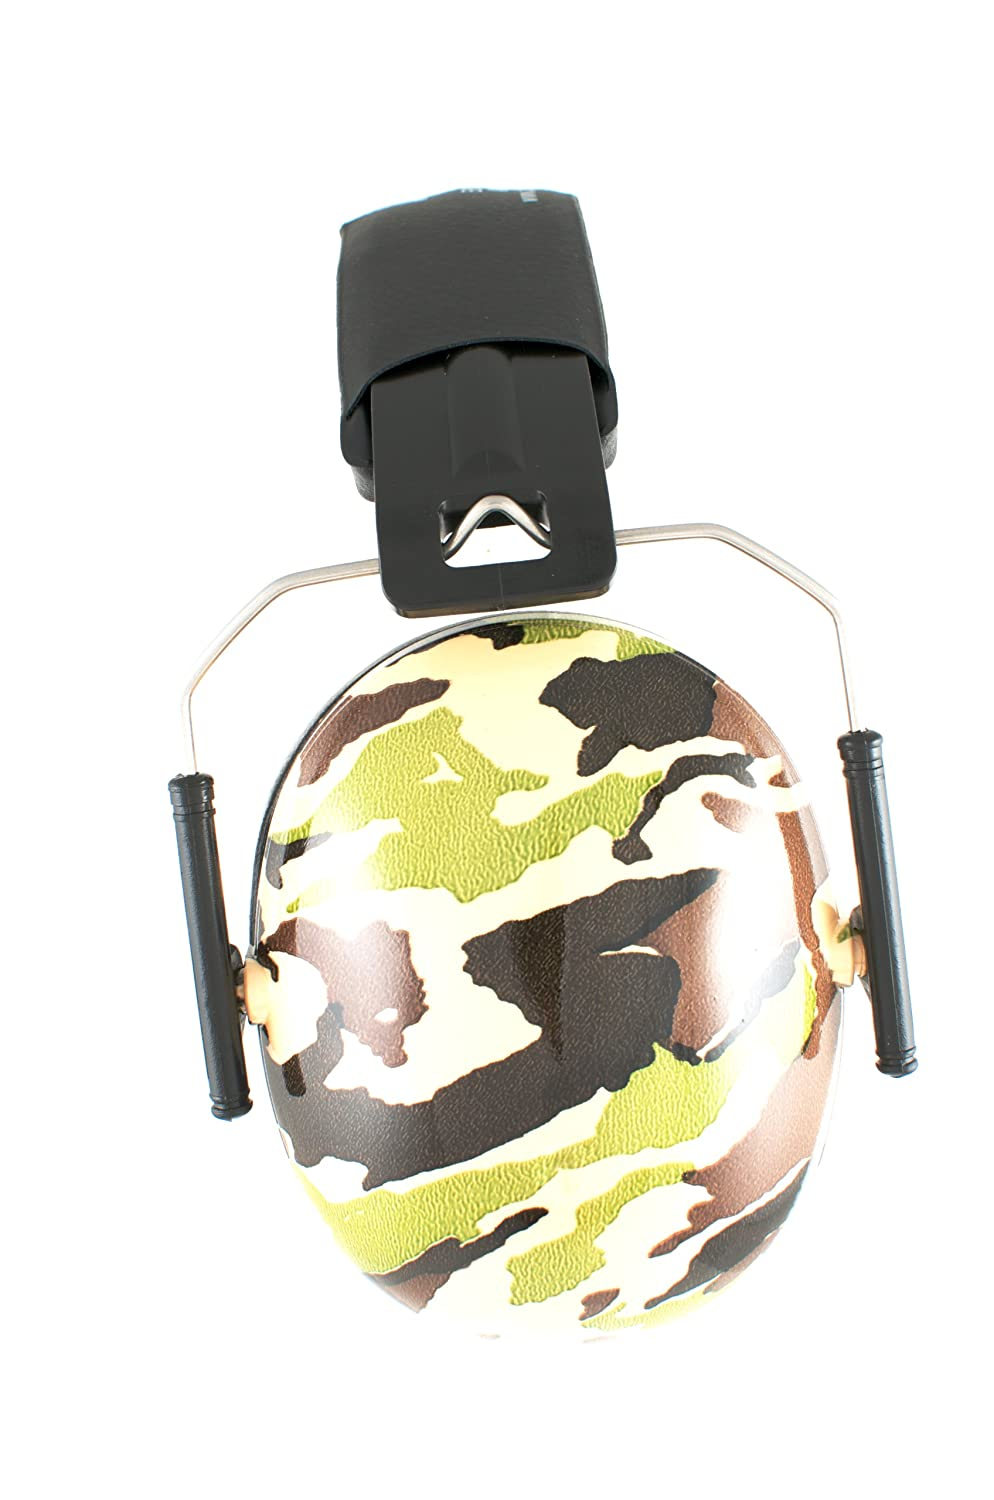 Banz Kidz Ear Defenders, Helmet oreillè res Acoustic for Children from 2 years and over. Geo.